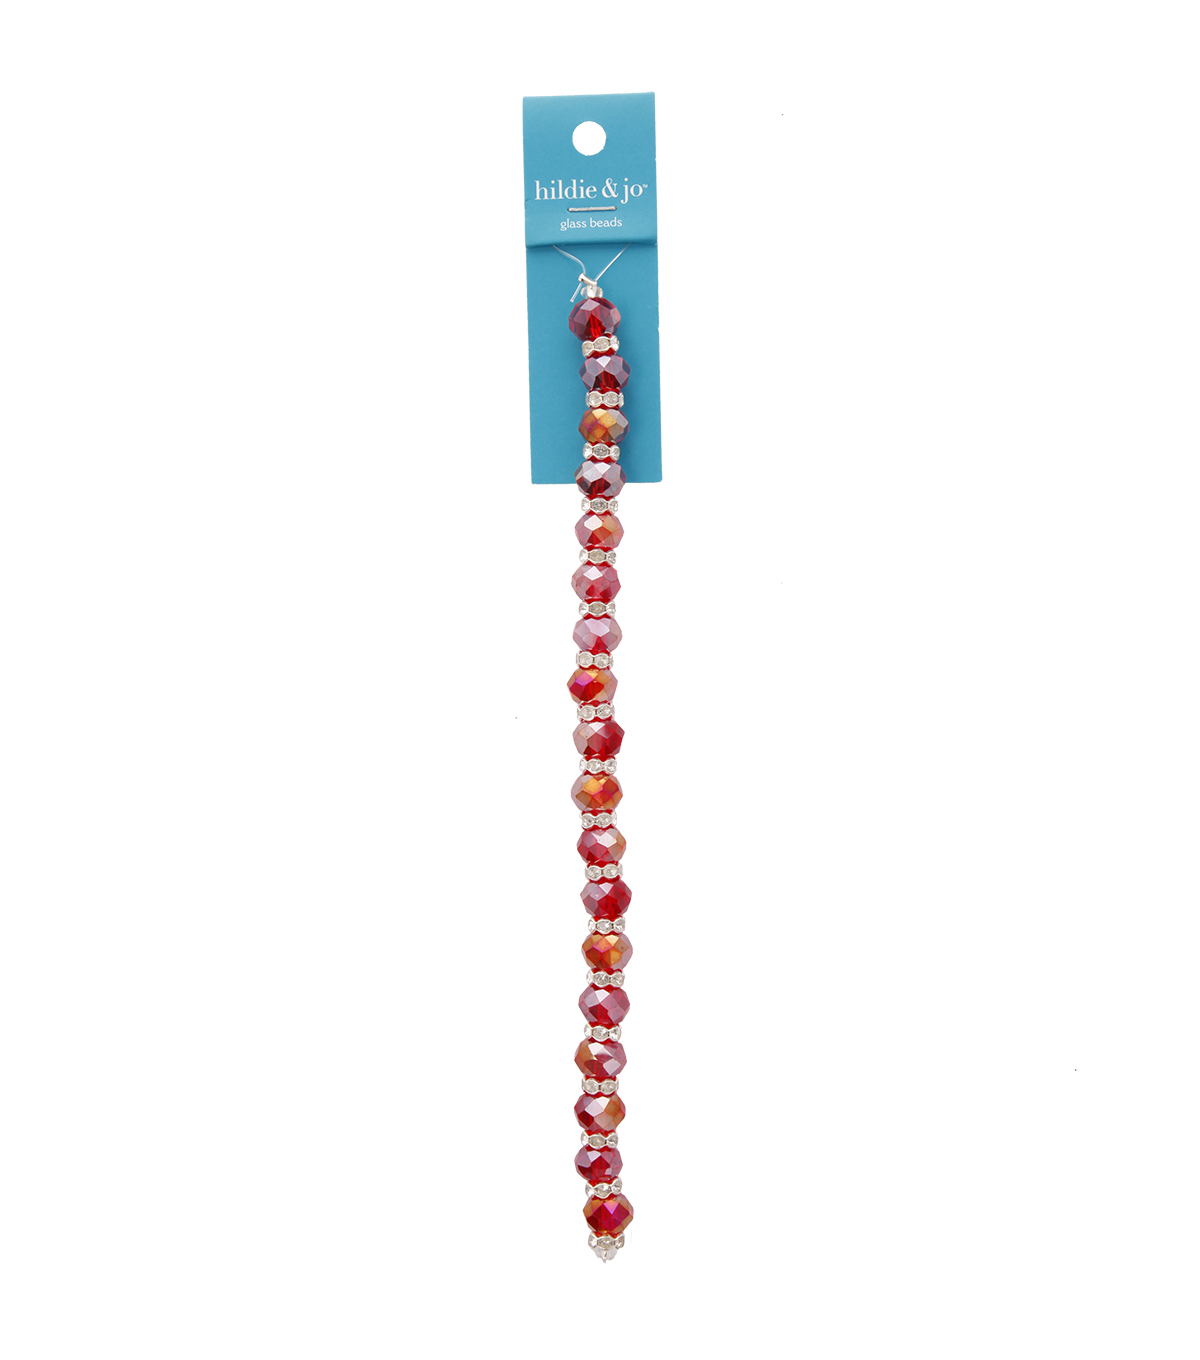 Blue Moon Beads 7\u0022 Crystal Strand, Rondelles with Metal Spacers, Red